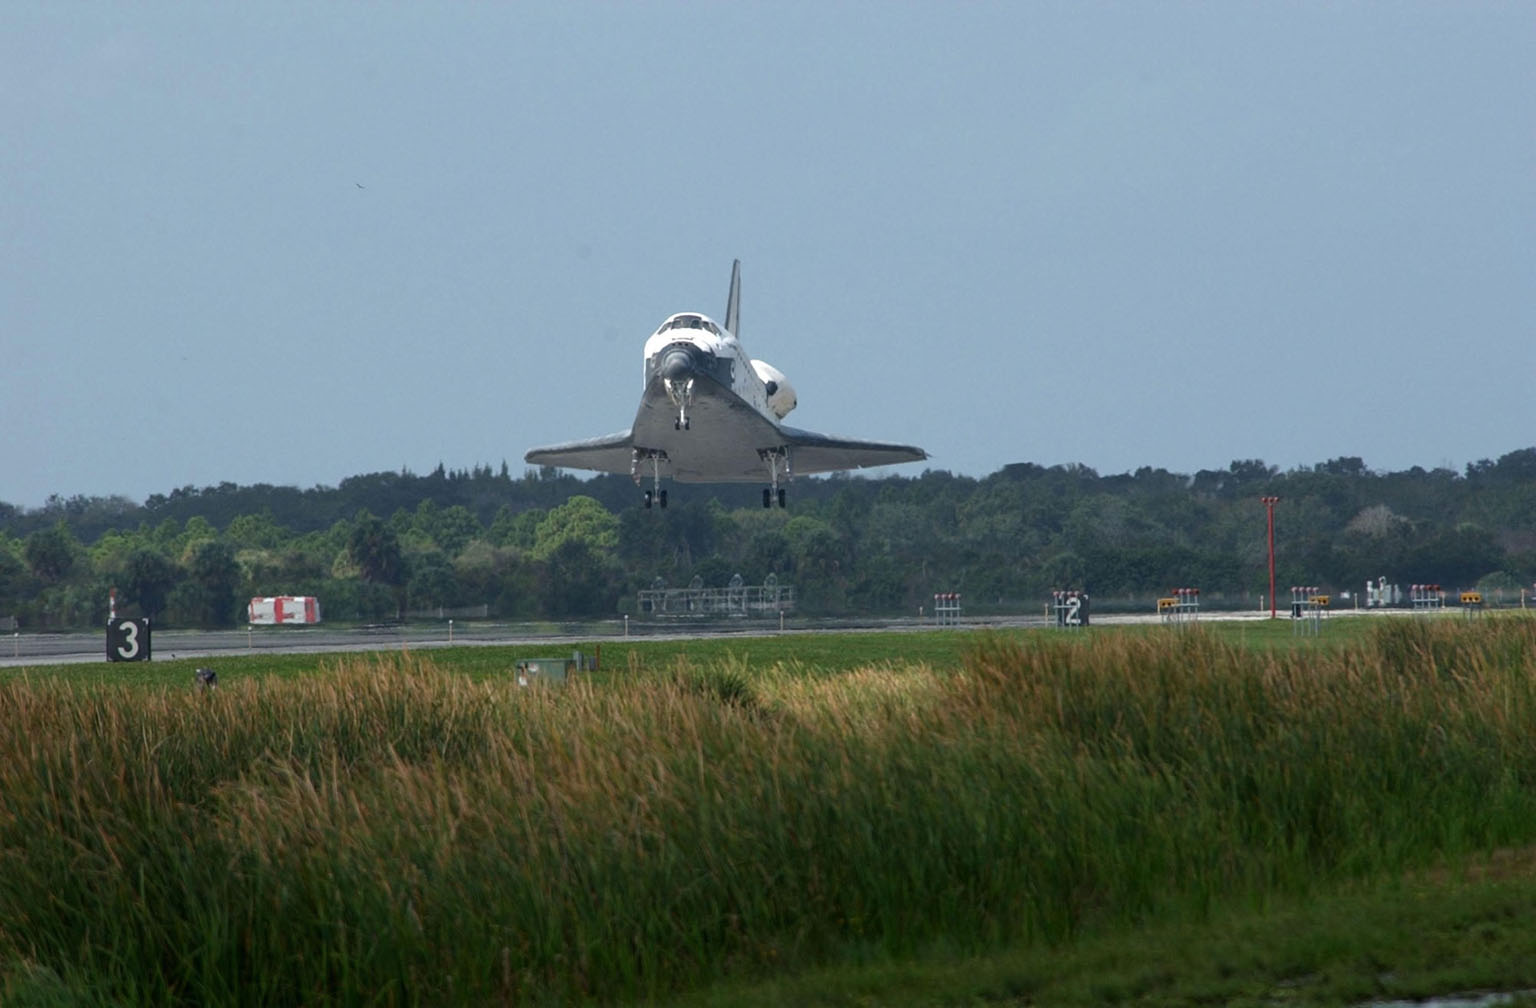 KENNEDY SPACE CENTER, FLA. -- Orbiter Endeavour approaches Runway 15 at the KSC Shuttle Landing Facility, after a mission elapsed time of 11 days, 19 hours, 35 minutes. Main gear touchdown occurred at 12:55:10 p.m. EST, nose gear touchdown at 12:55:23 p.m. , wheel stop at 12:56:13 p.m. The landing, the 57th at KSC in the history of the program, completed the STS-108 mission known as Utilization Flight 1, which was the 12th mission to the International Space Station. This mission was the 107th flight in the Shuttle program and the 17th flight for the orbiter. Endeavour carries both the mission crew and the Expedition 3 crew - Commander Frank Culbertson and cosmonauts Vladimir Dezhurov and Mikhail Tyurin - who are returning to Earth after 129 days in space on the Space Station